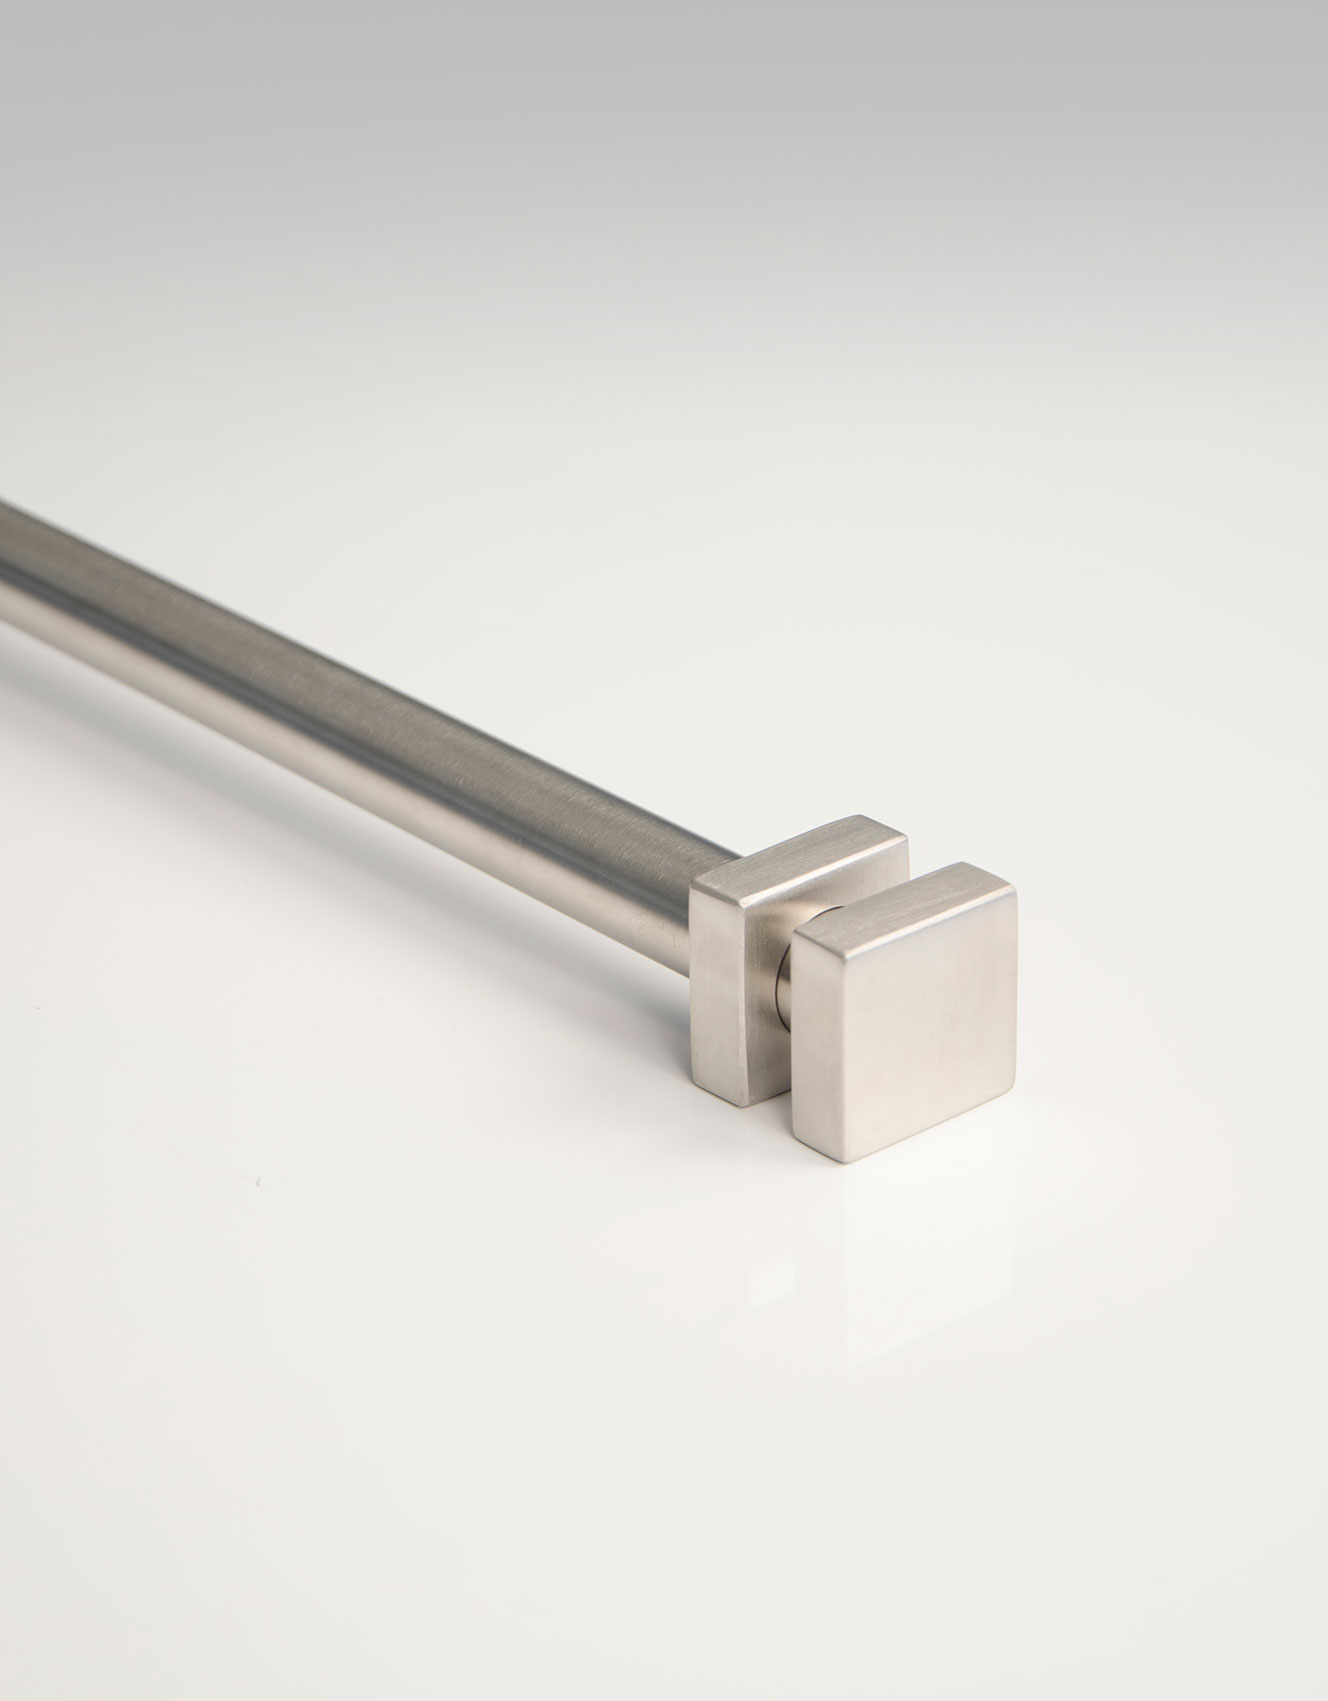 infront square curtain rod stainless steel 18 20 mm or 26 28 mm